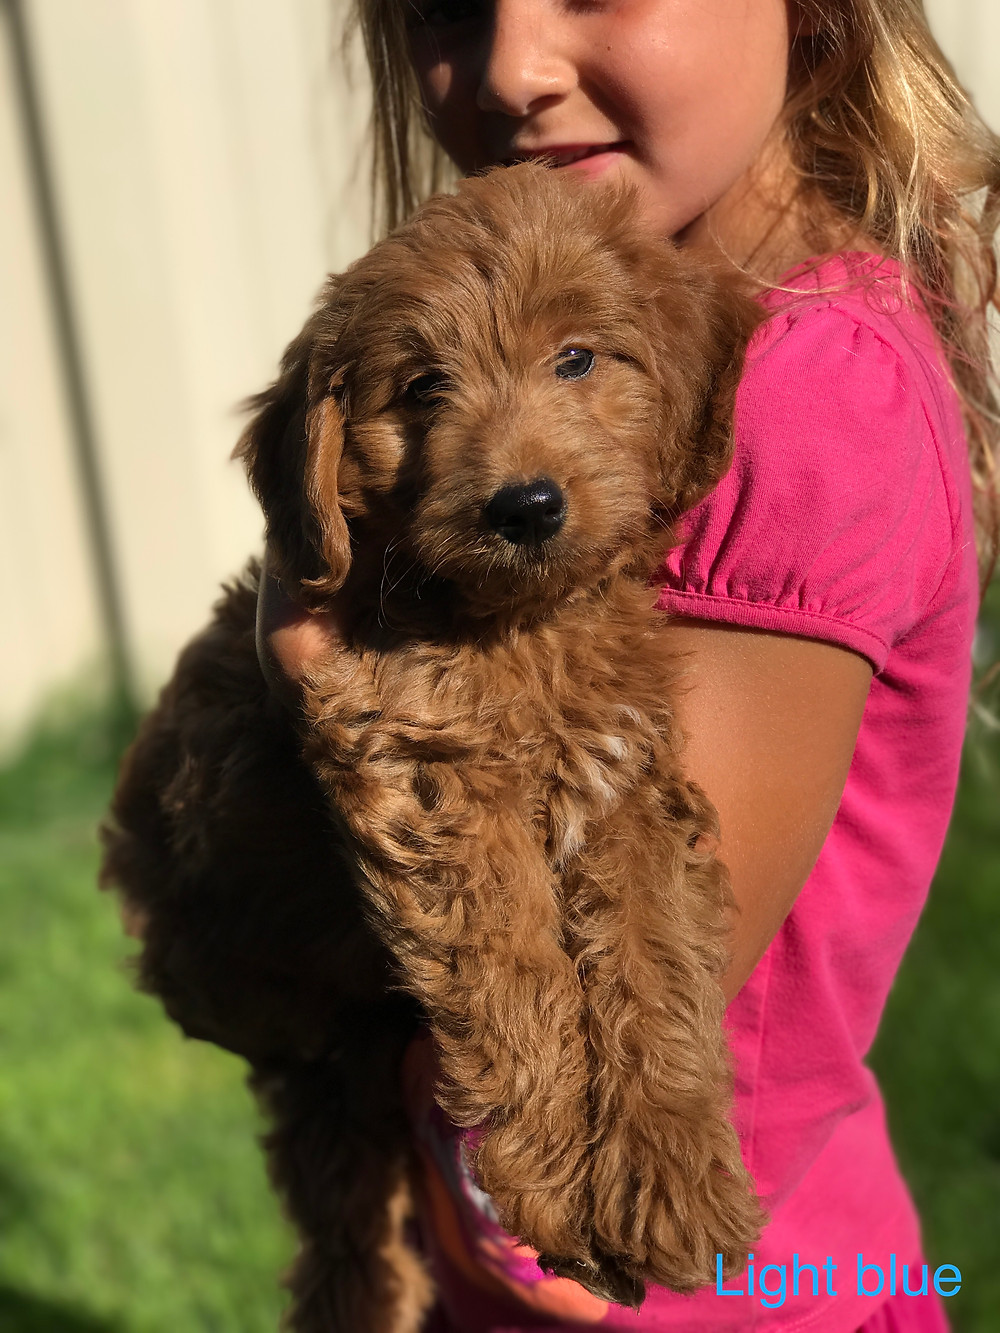 f1 mini goldendoodle idaho for sale, dogs walking on hot pavement